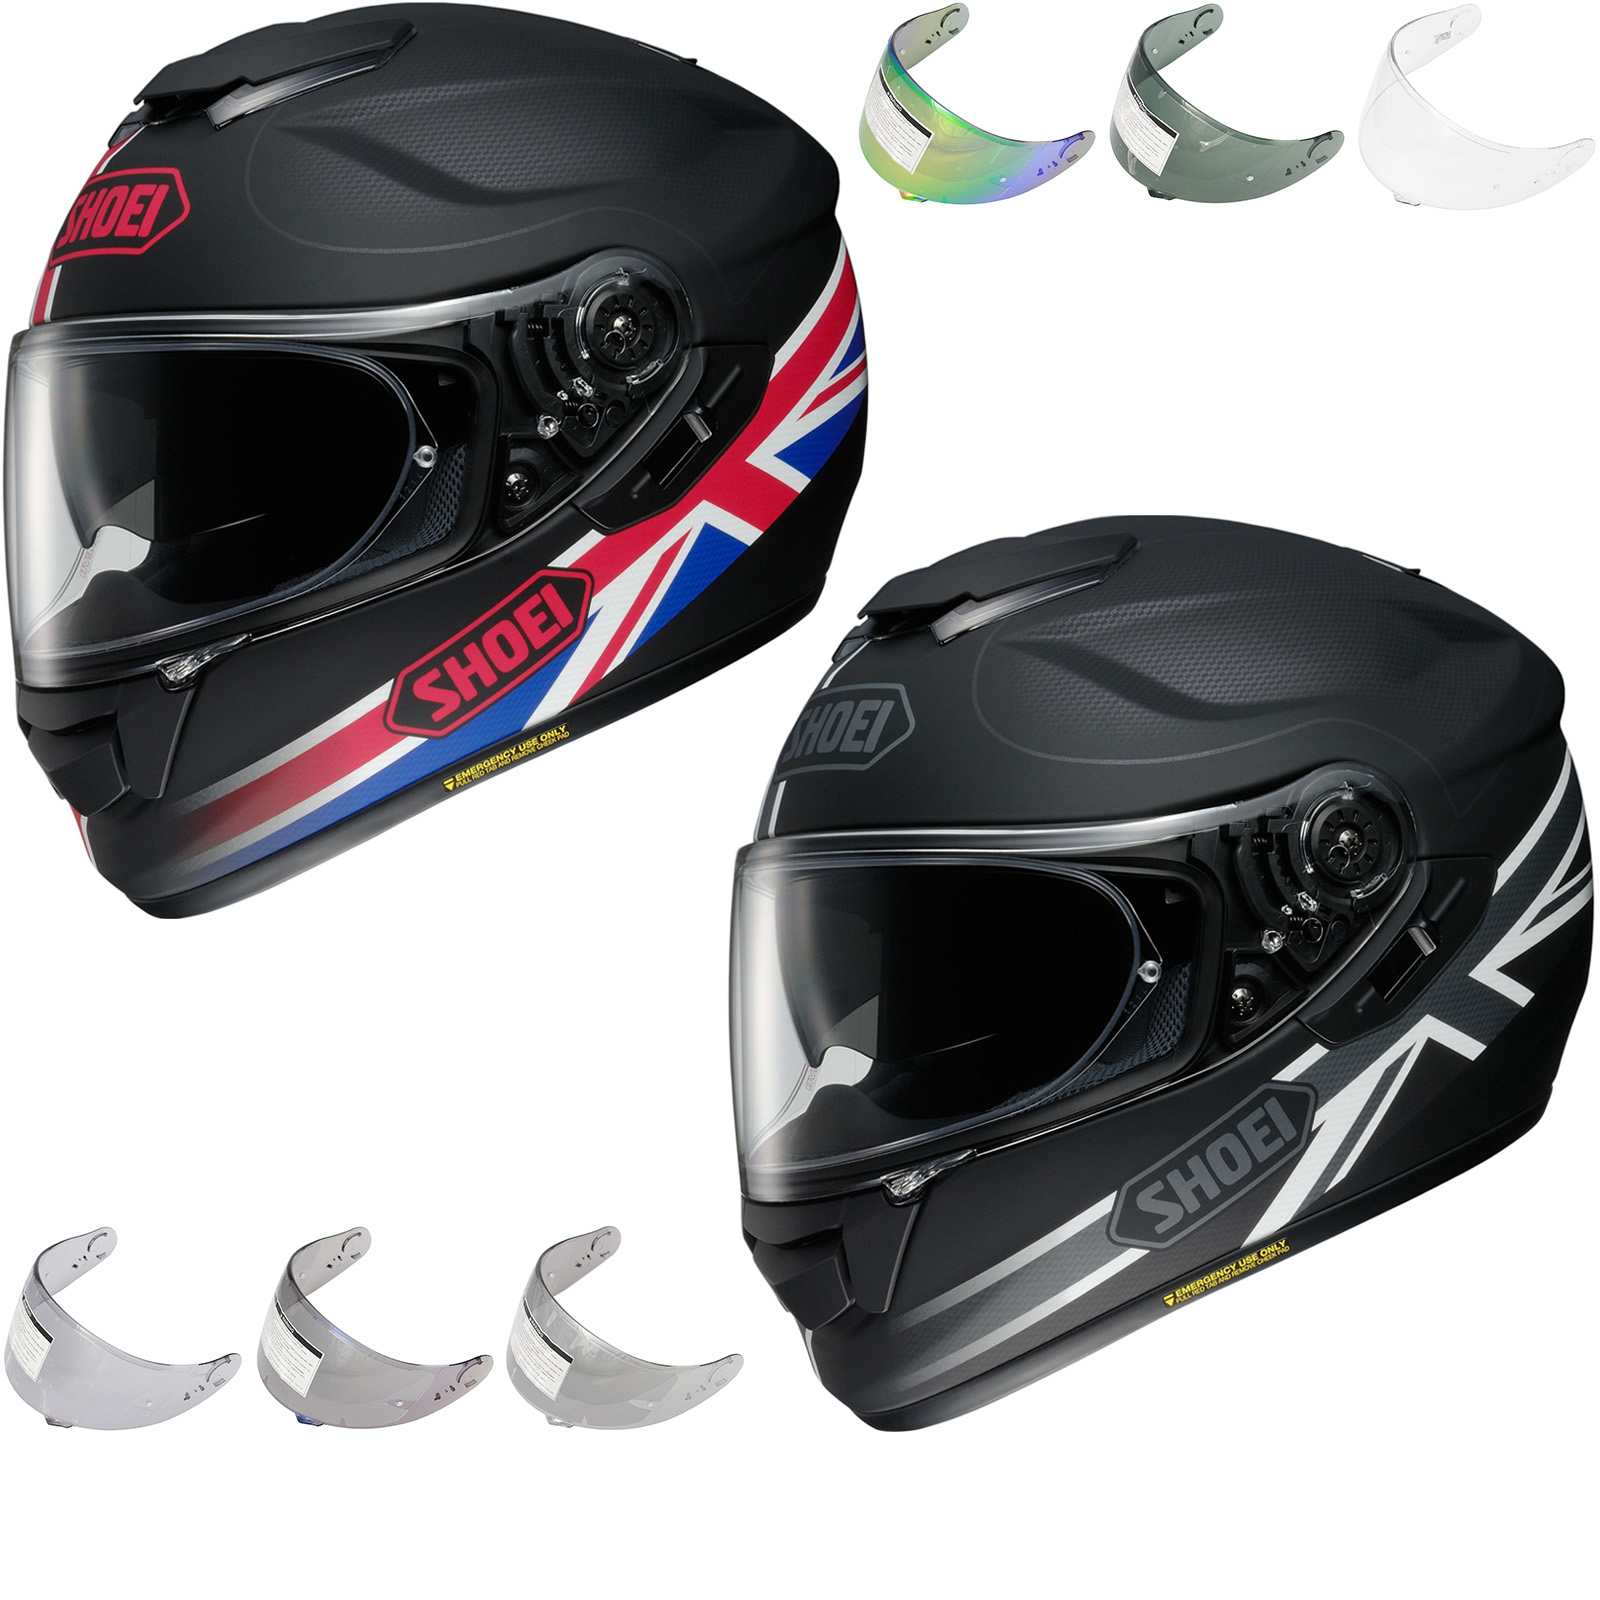 shoei gt air royalty motorcycle helmet visor new arrivals. Black Bedroom Furniture Sets. Home Design Ideas